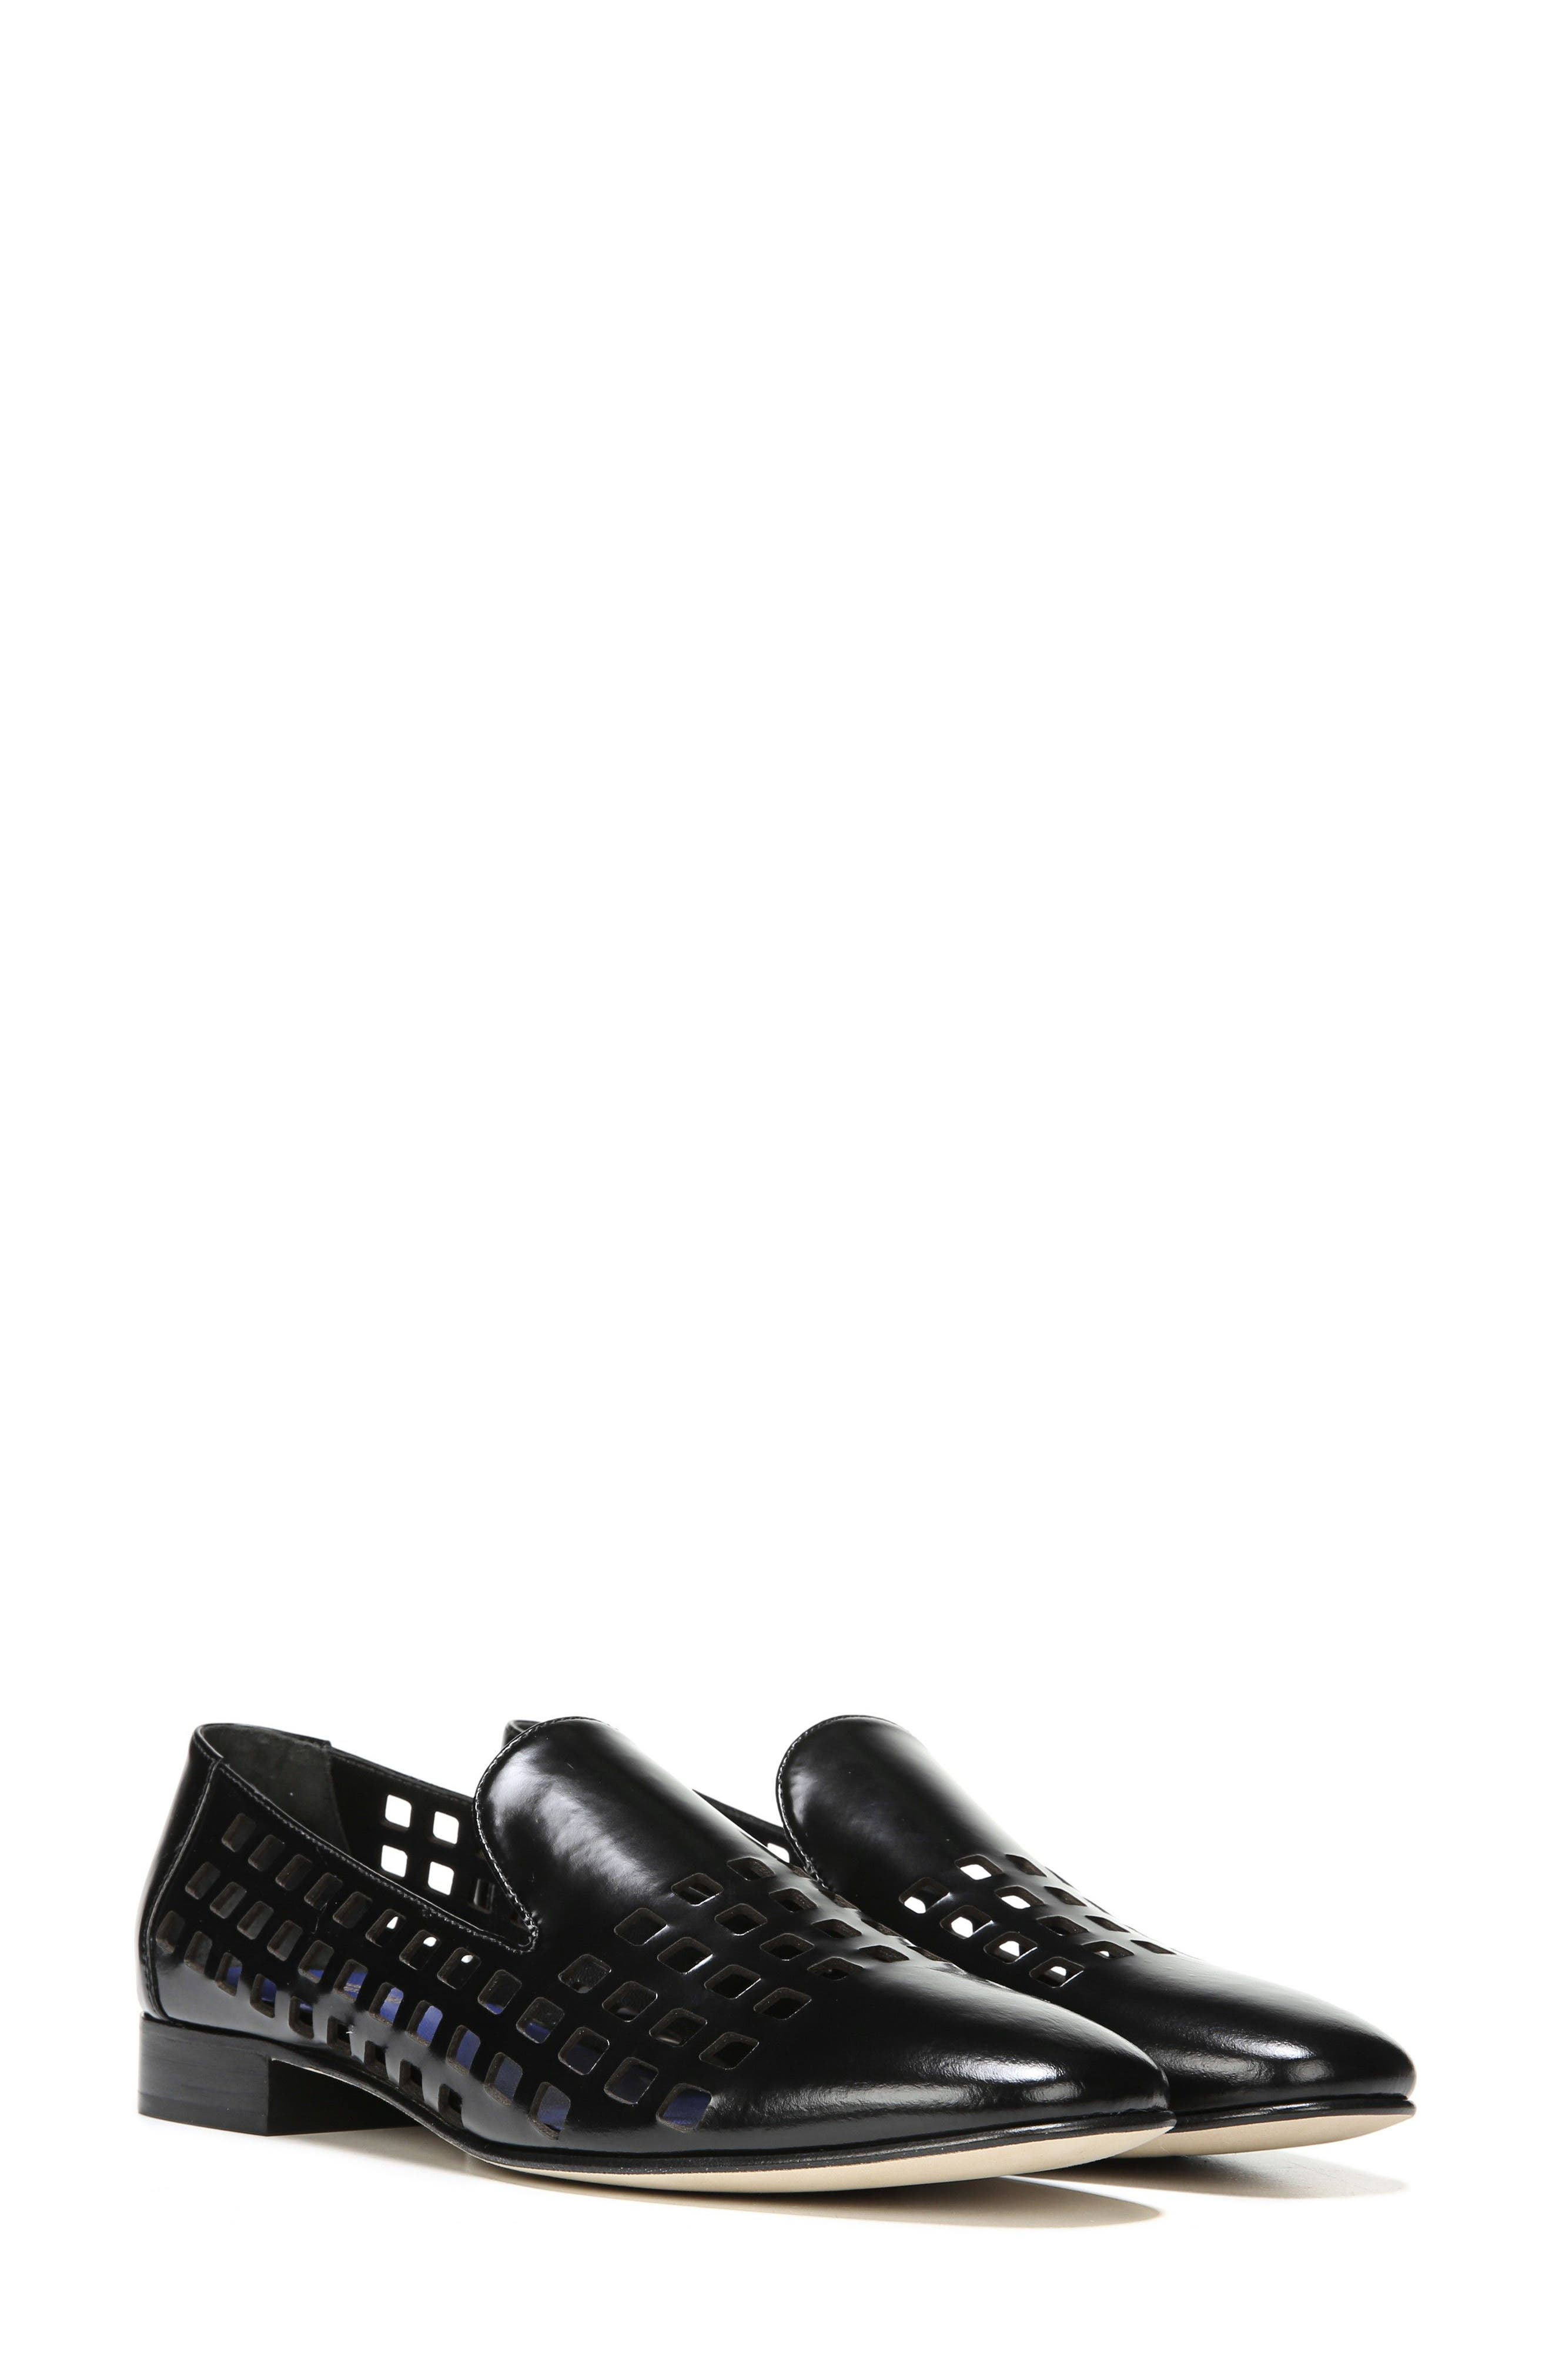 Linz Perforated Loafer,                             Alternate thumbnail 7, color,                             001